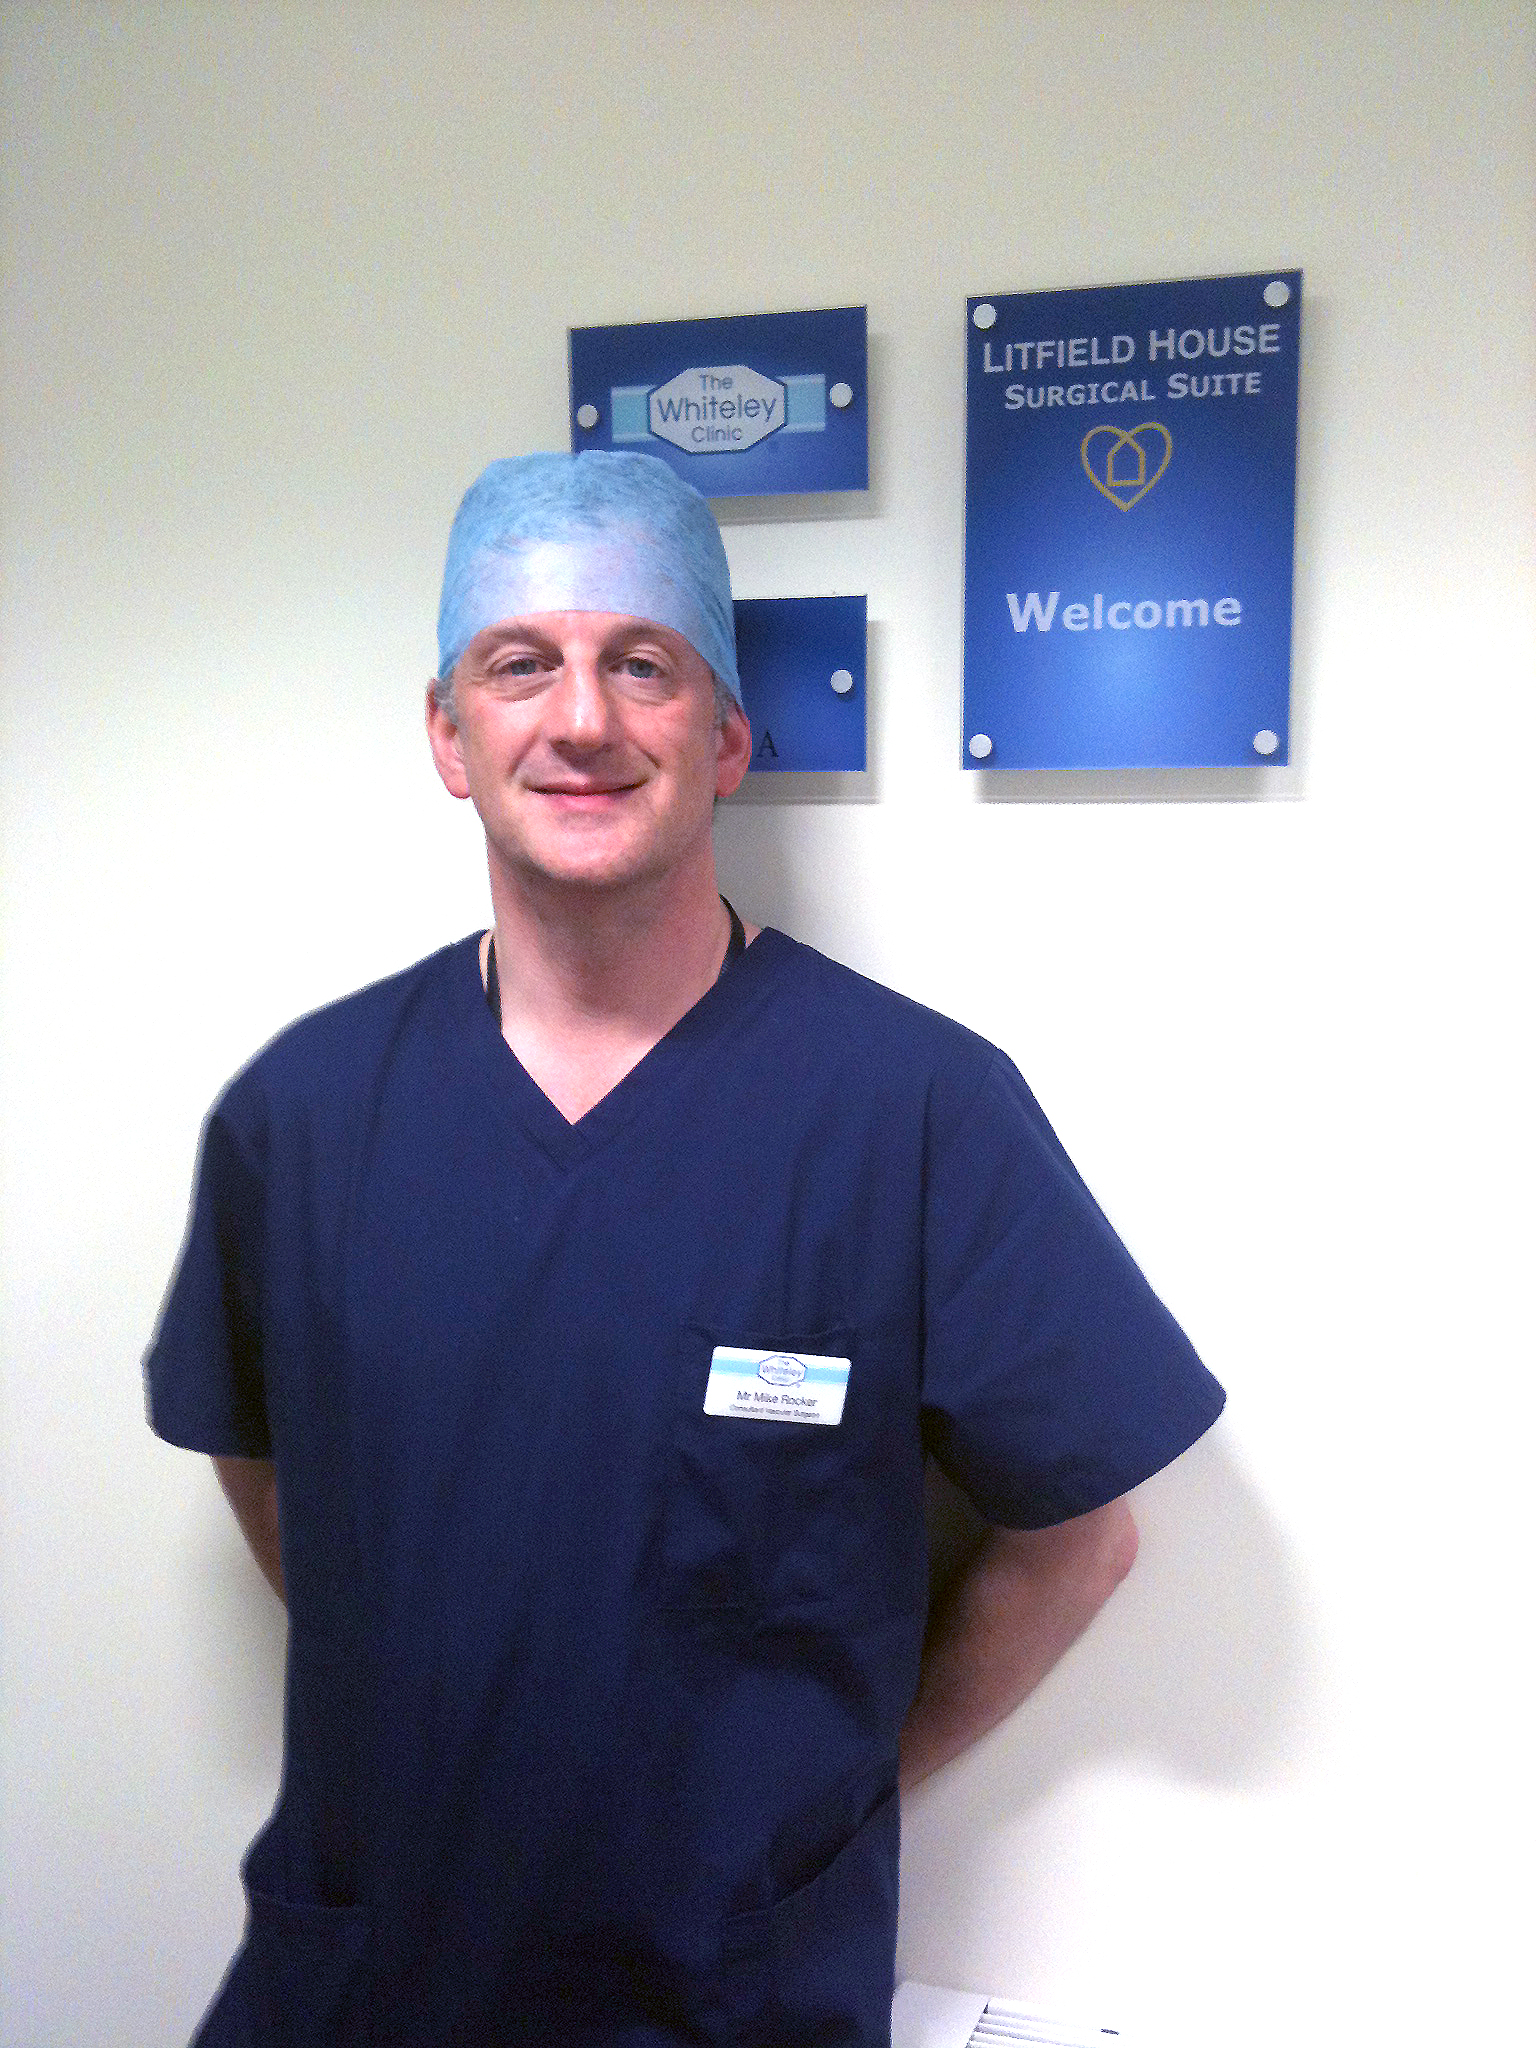 Mike Rocker The Whiteley Clinic Consultant Surgeon